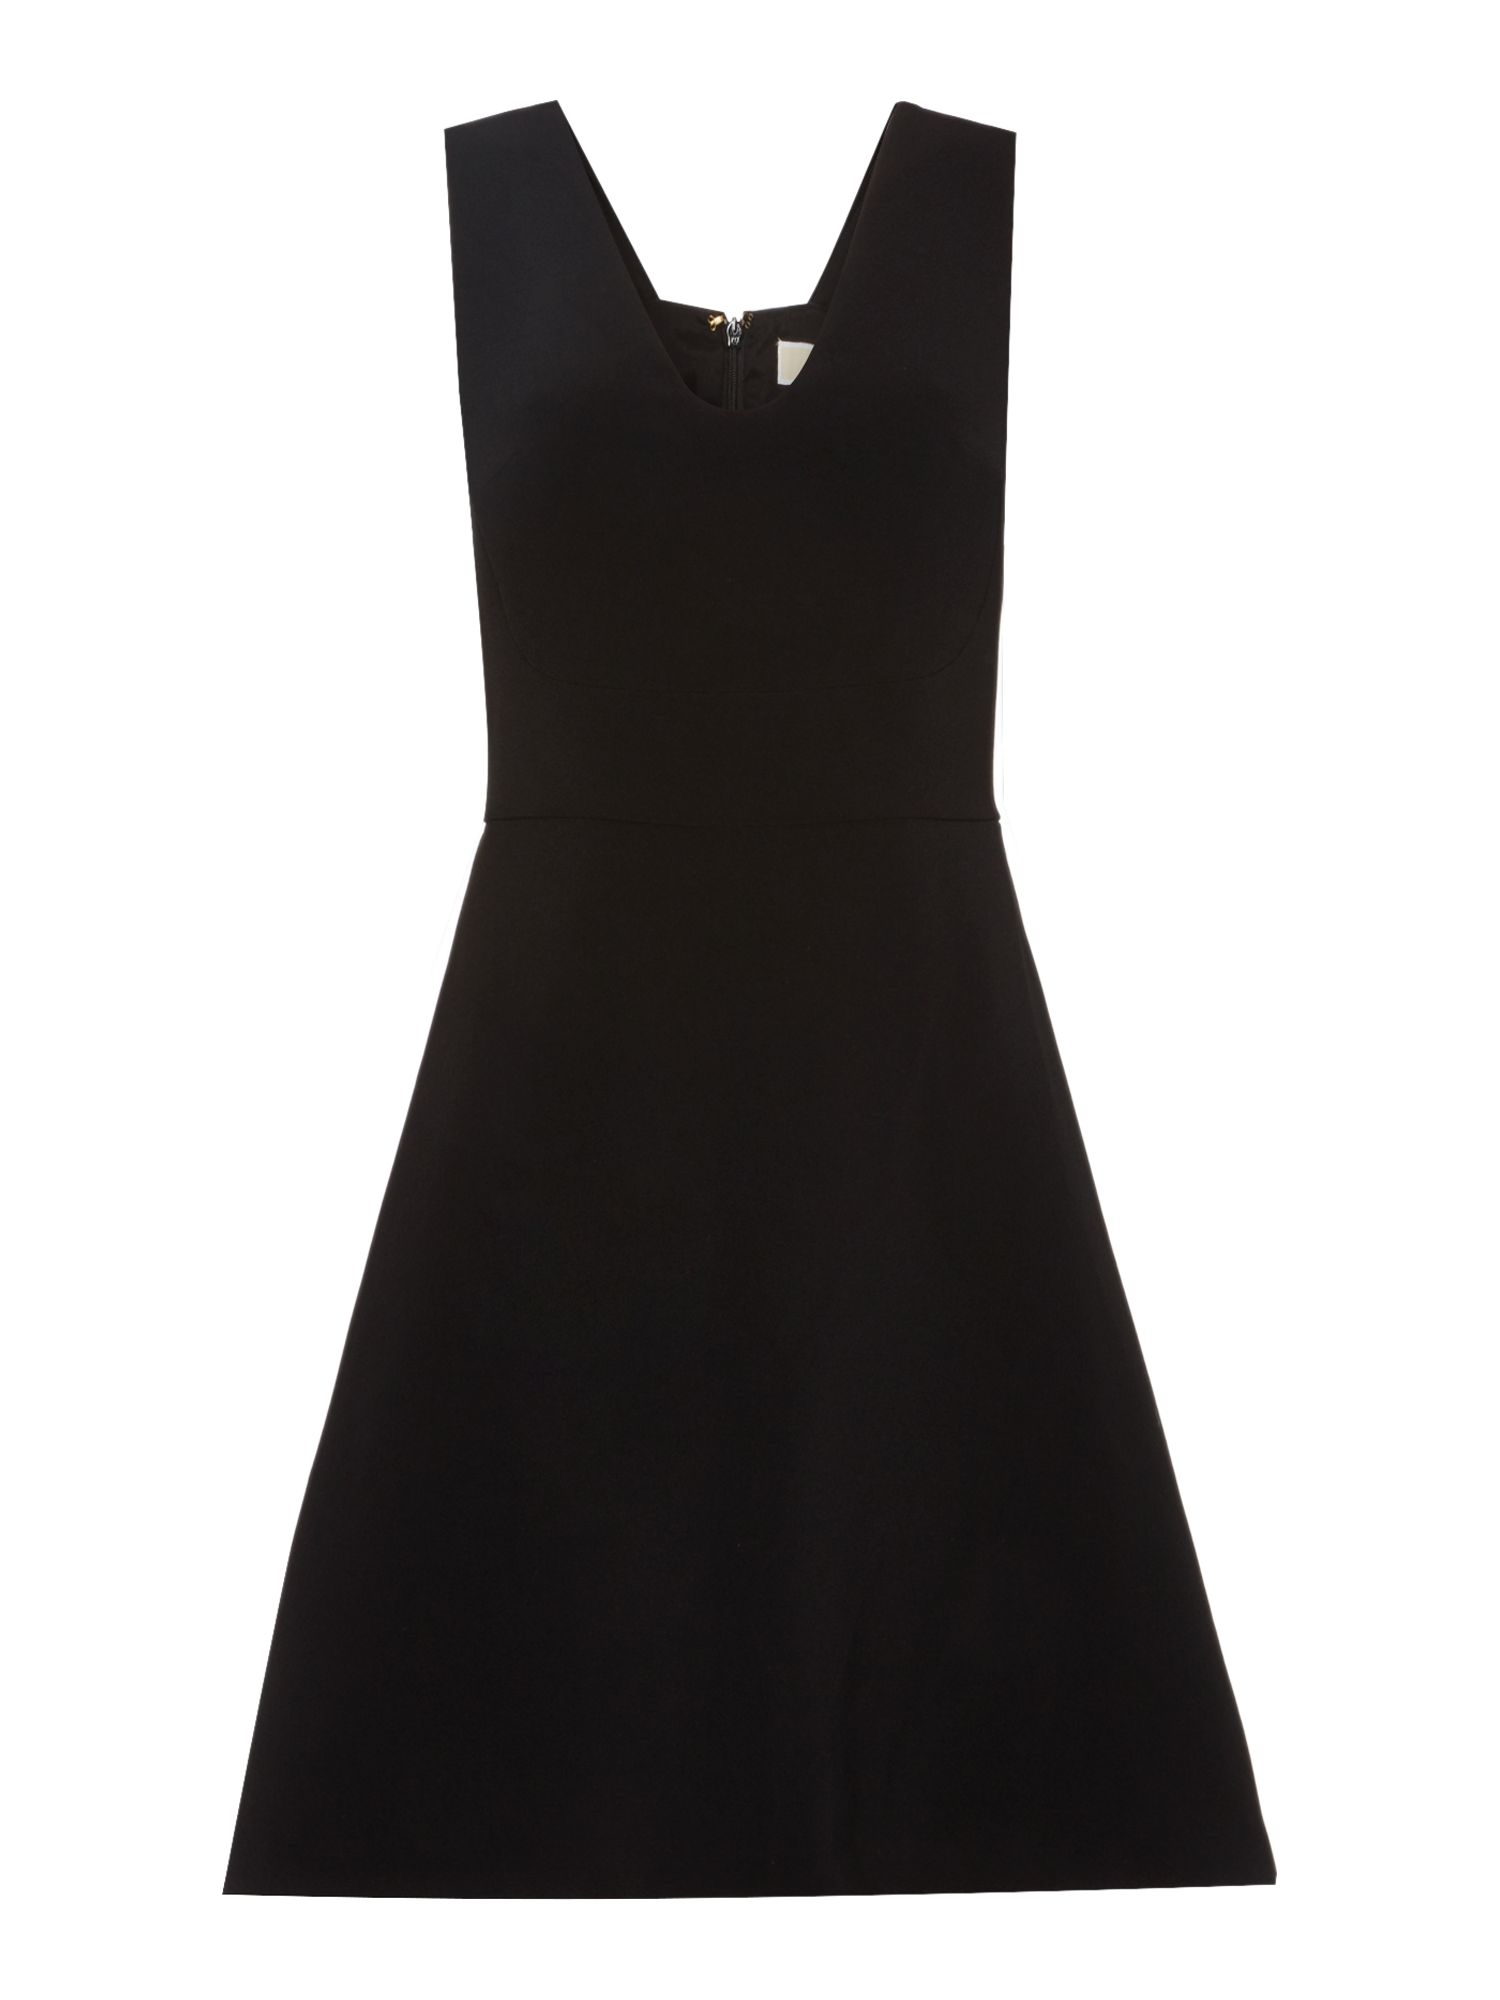 Michael Kors Sleeveless V Neck Pinafore Dress, Black